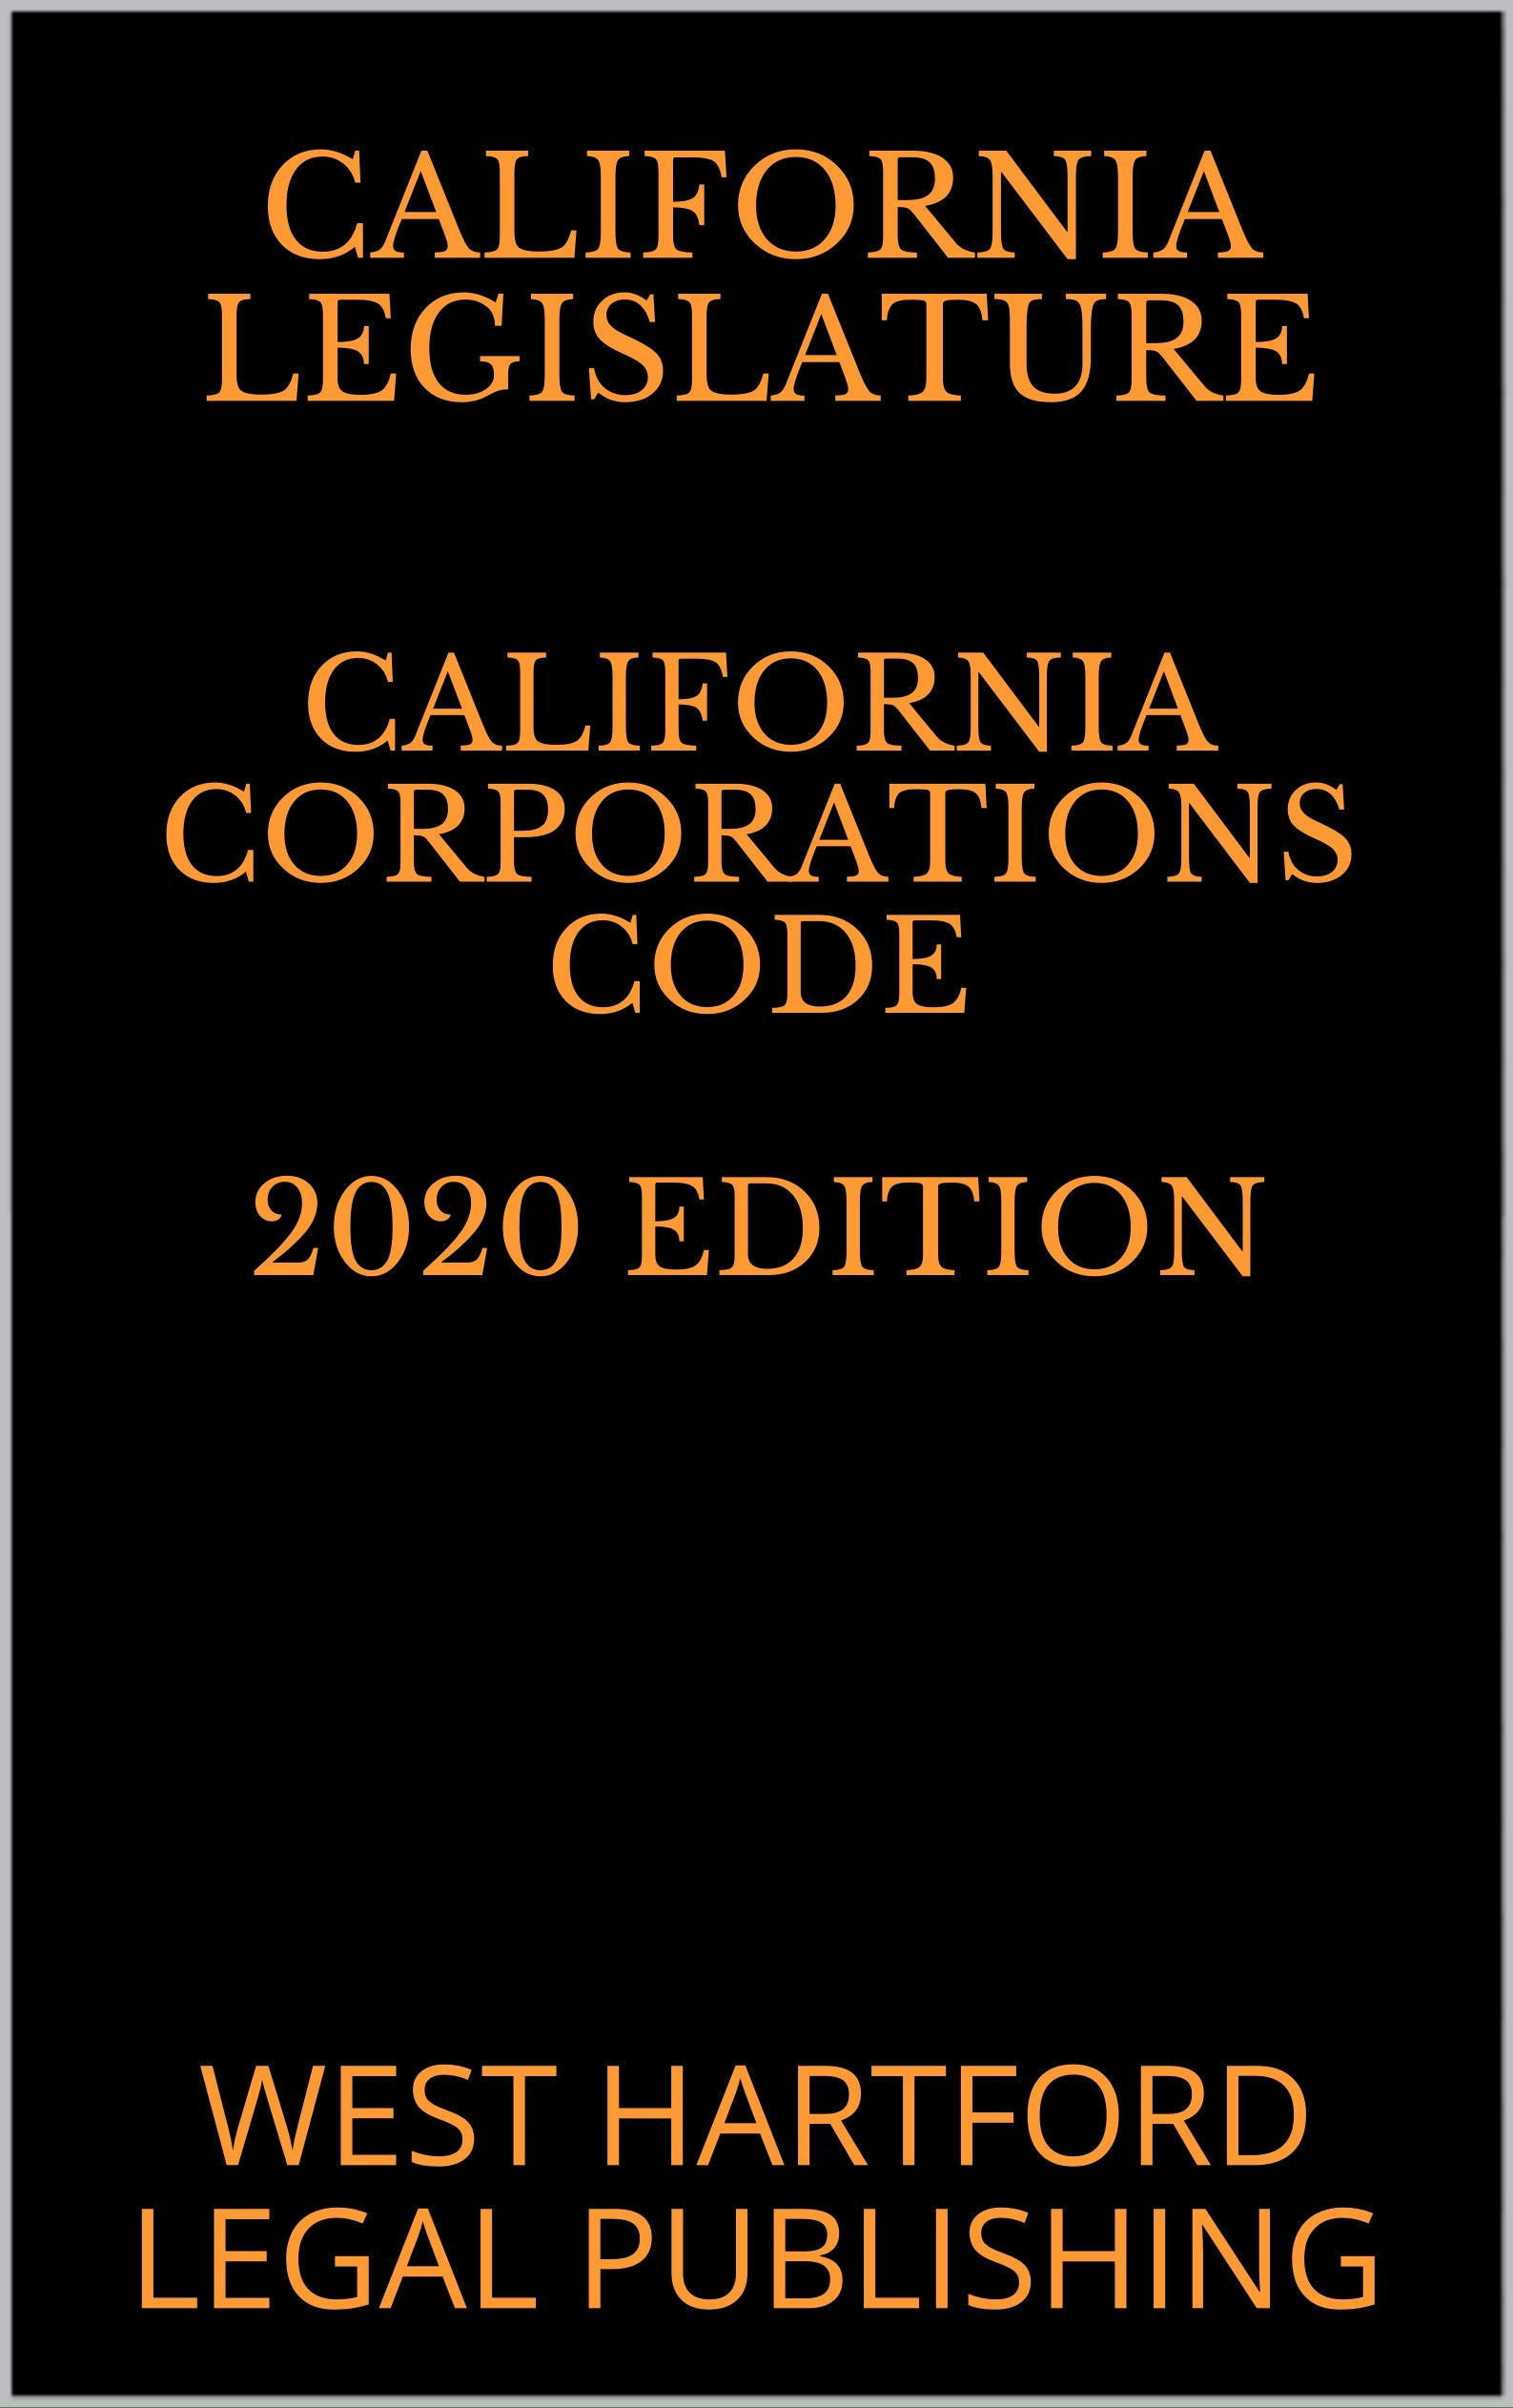 CALIFORNIA CORPORATIONS CODE 2020 EDITION: WEST HARTFORD LEGAL PUBLISHING